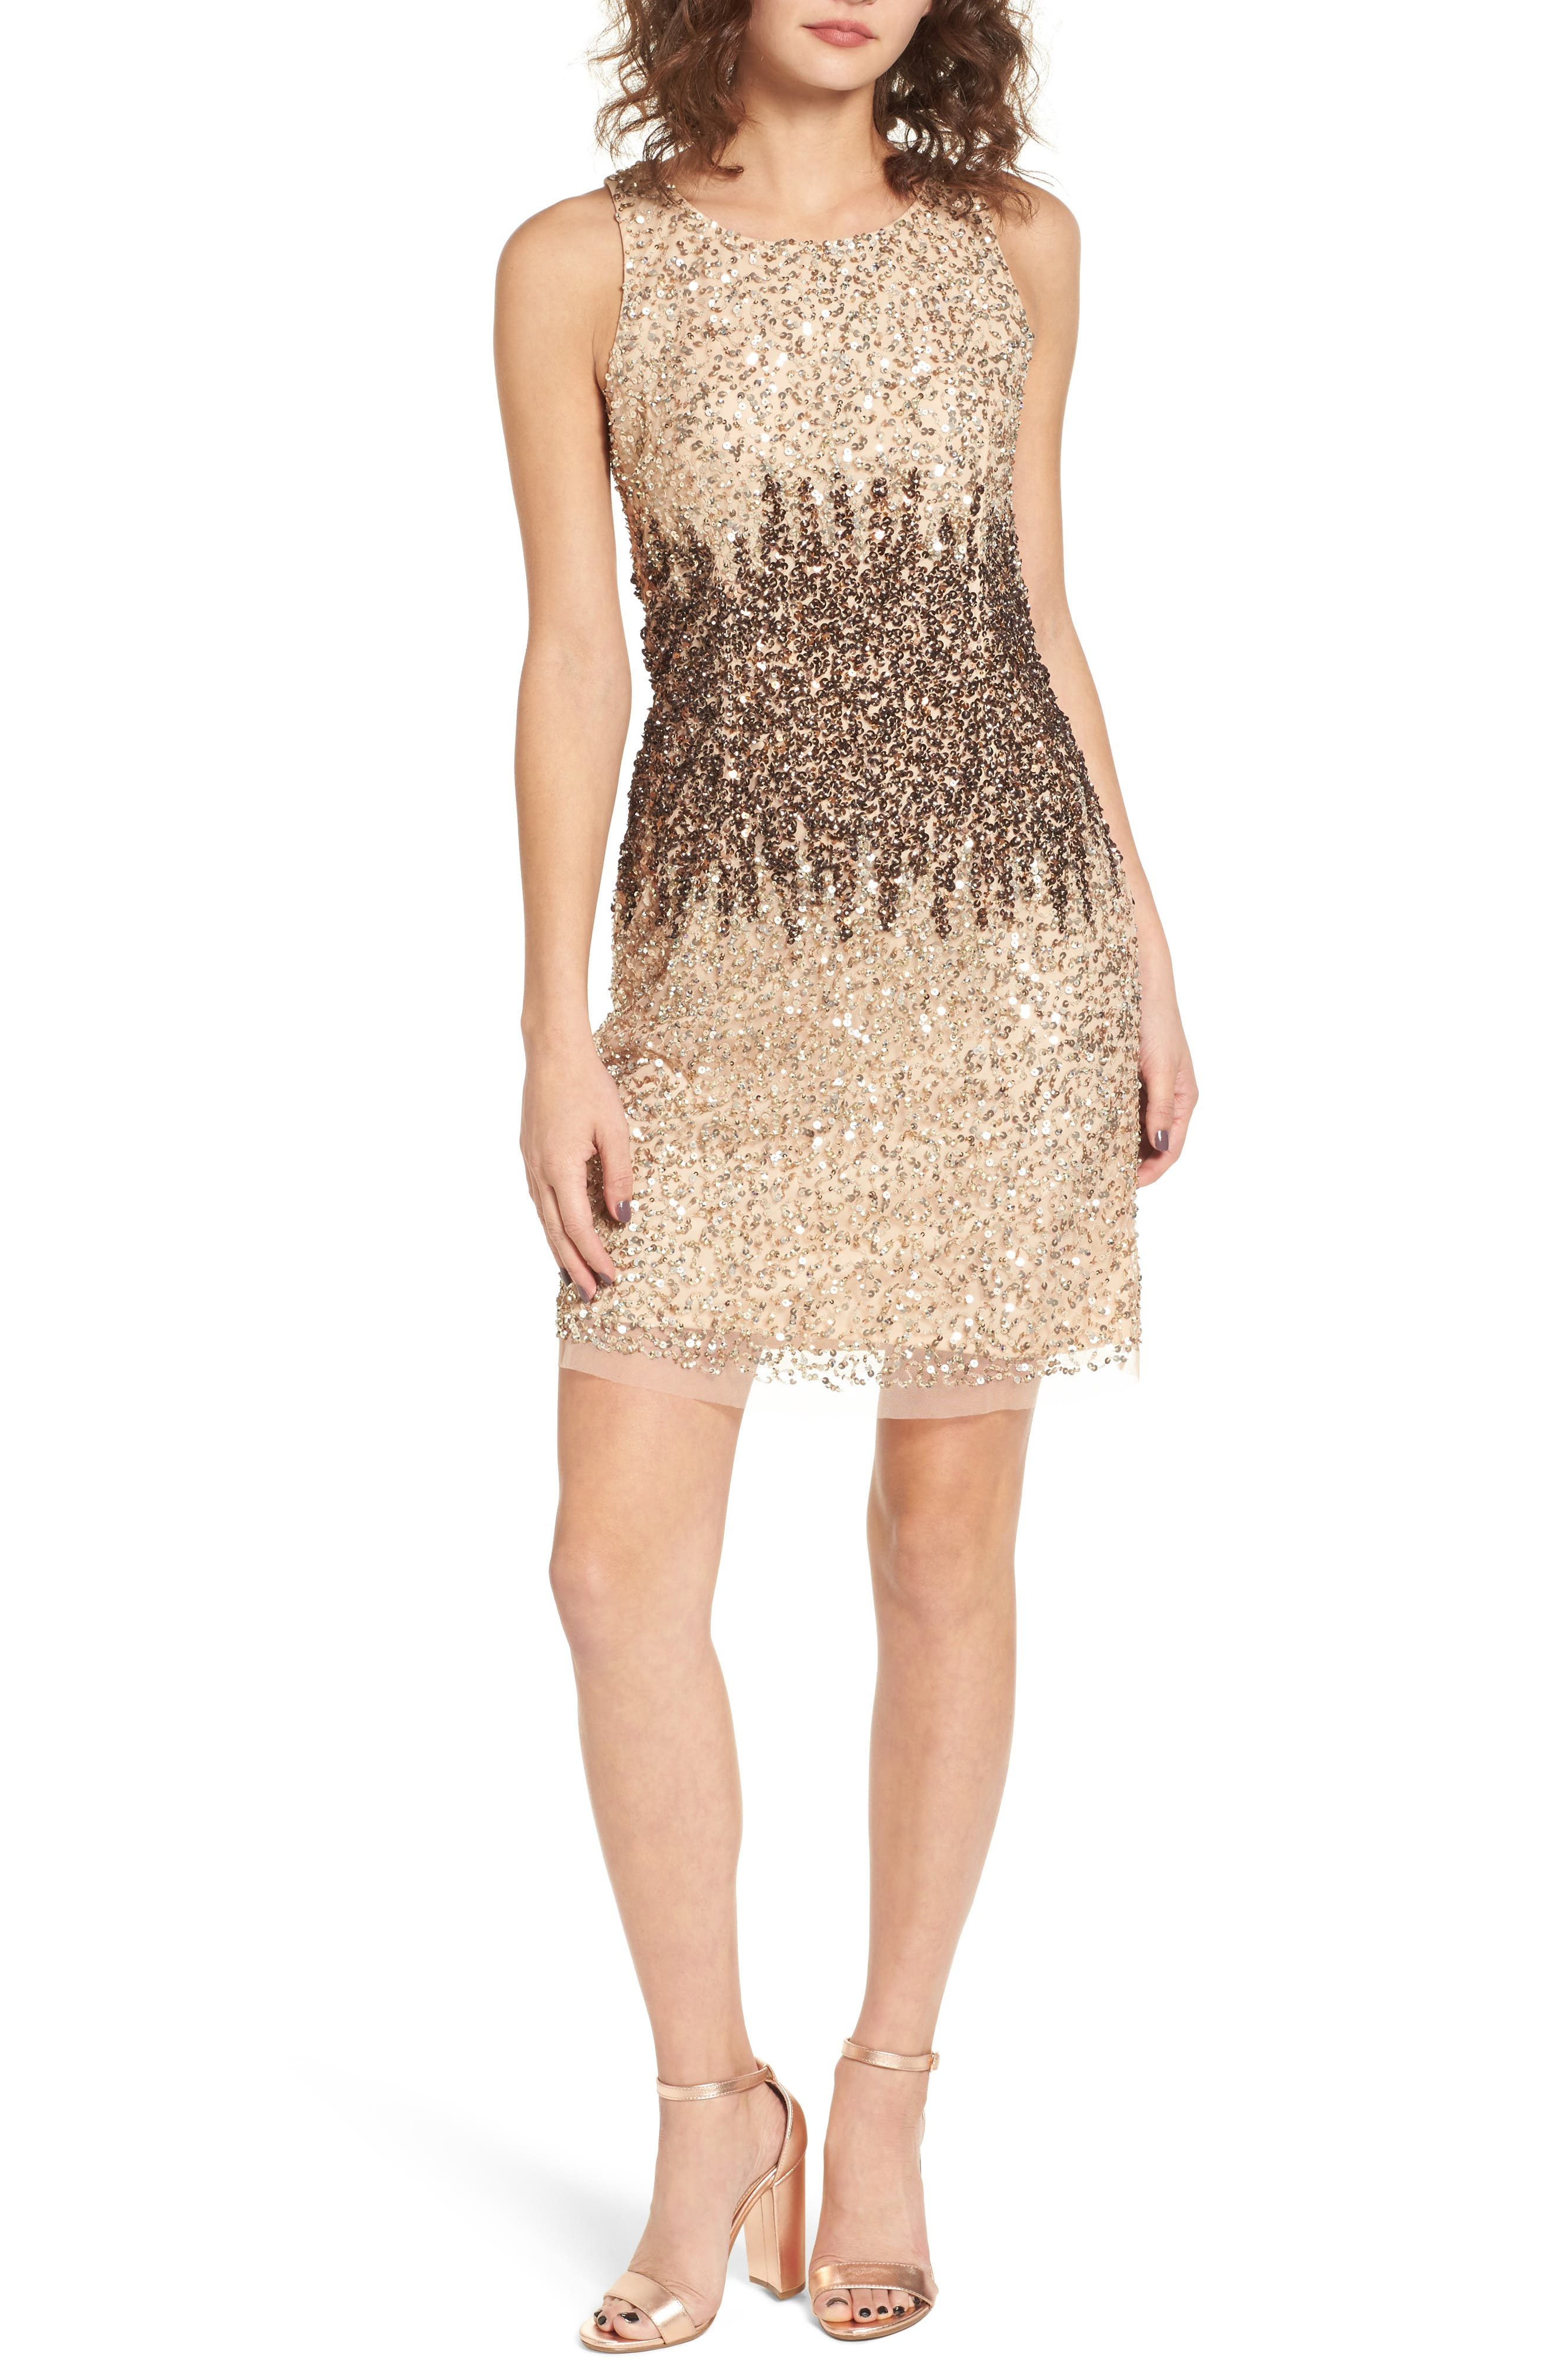 Sequins and Champagne Dress,                             Main thumbnail 1, color,                             280